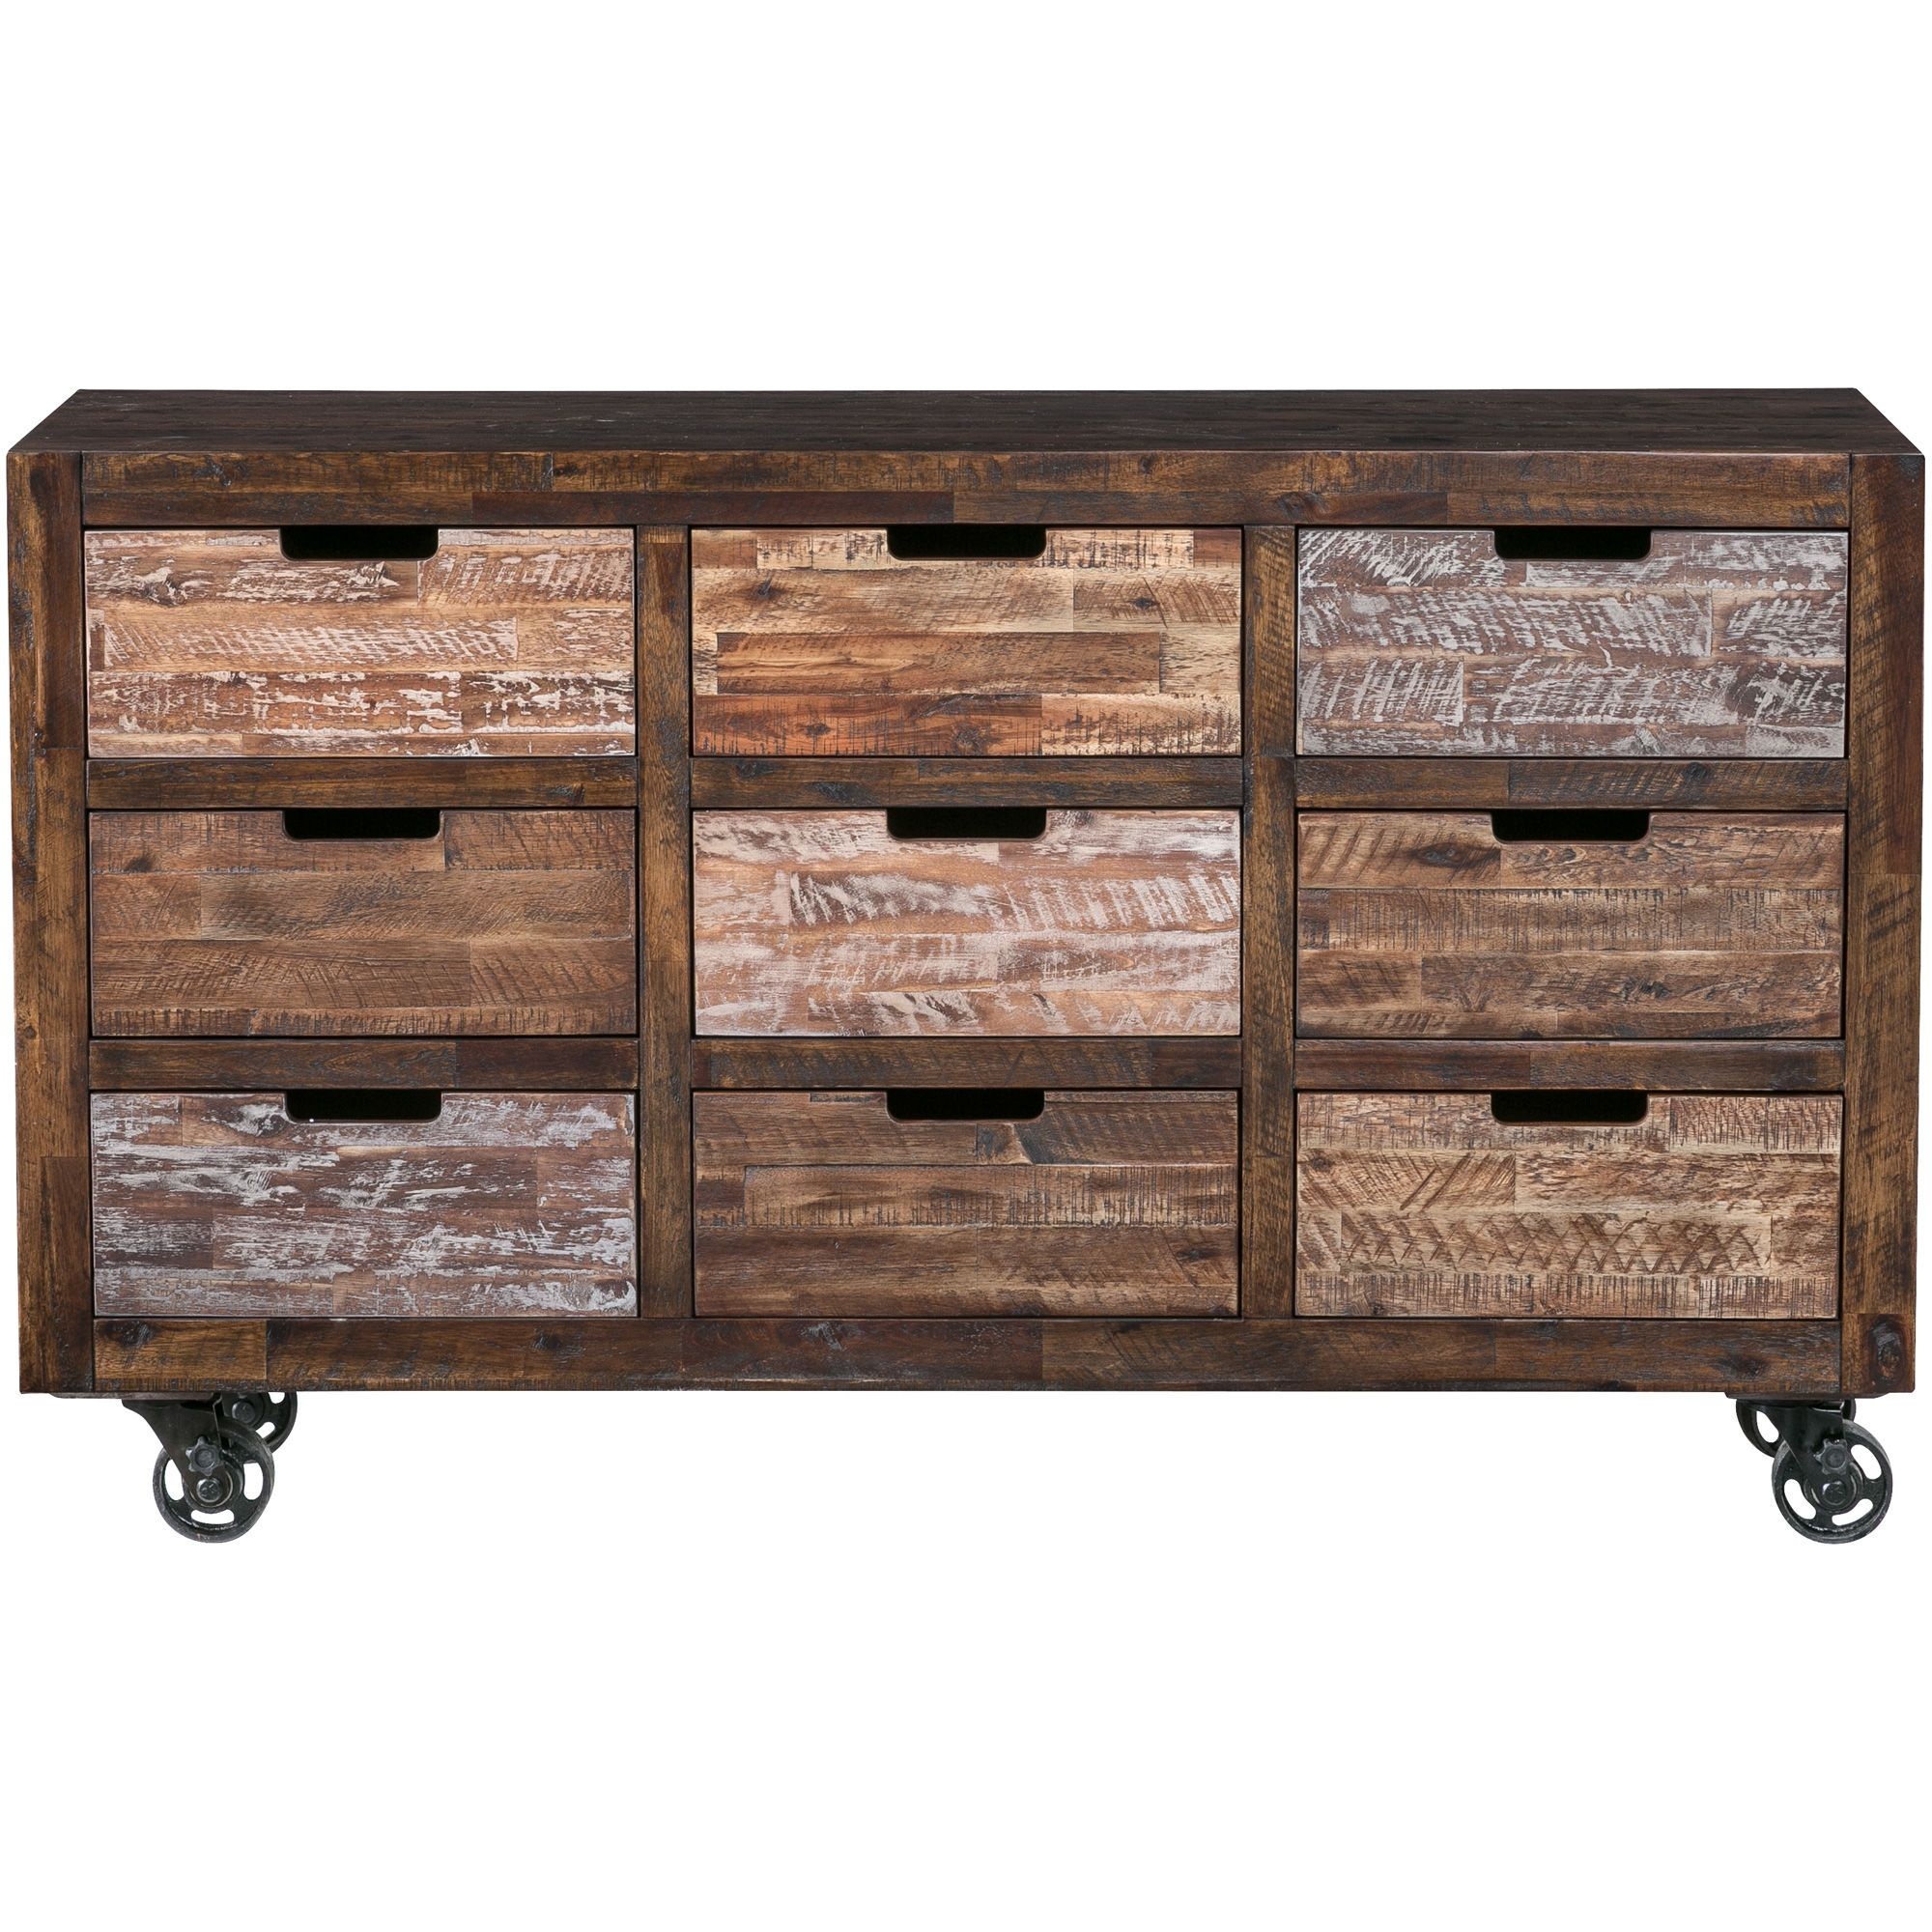 Slumberland Furniture Painted Canyon Chestnut 9 Drawer Chest In 2020 Chest Of Drawers Slumberland Furniture Modern Industrial Decor